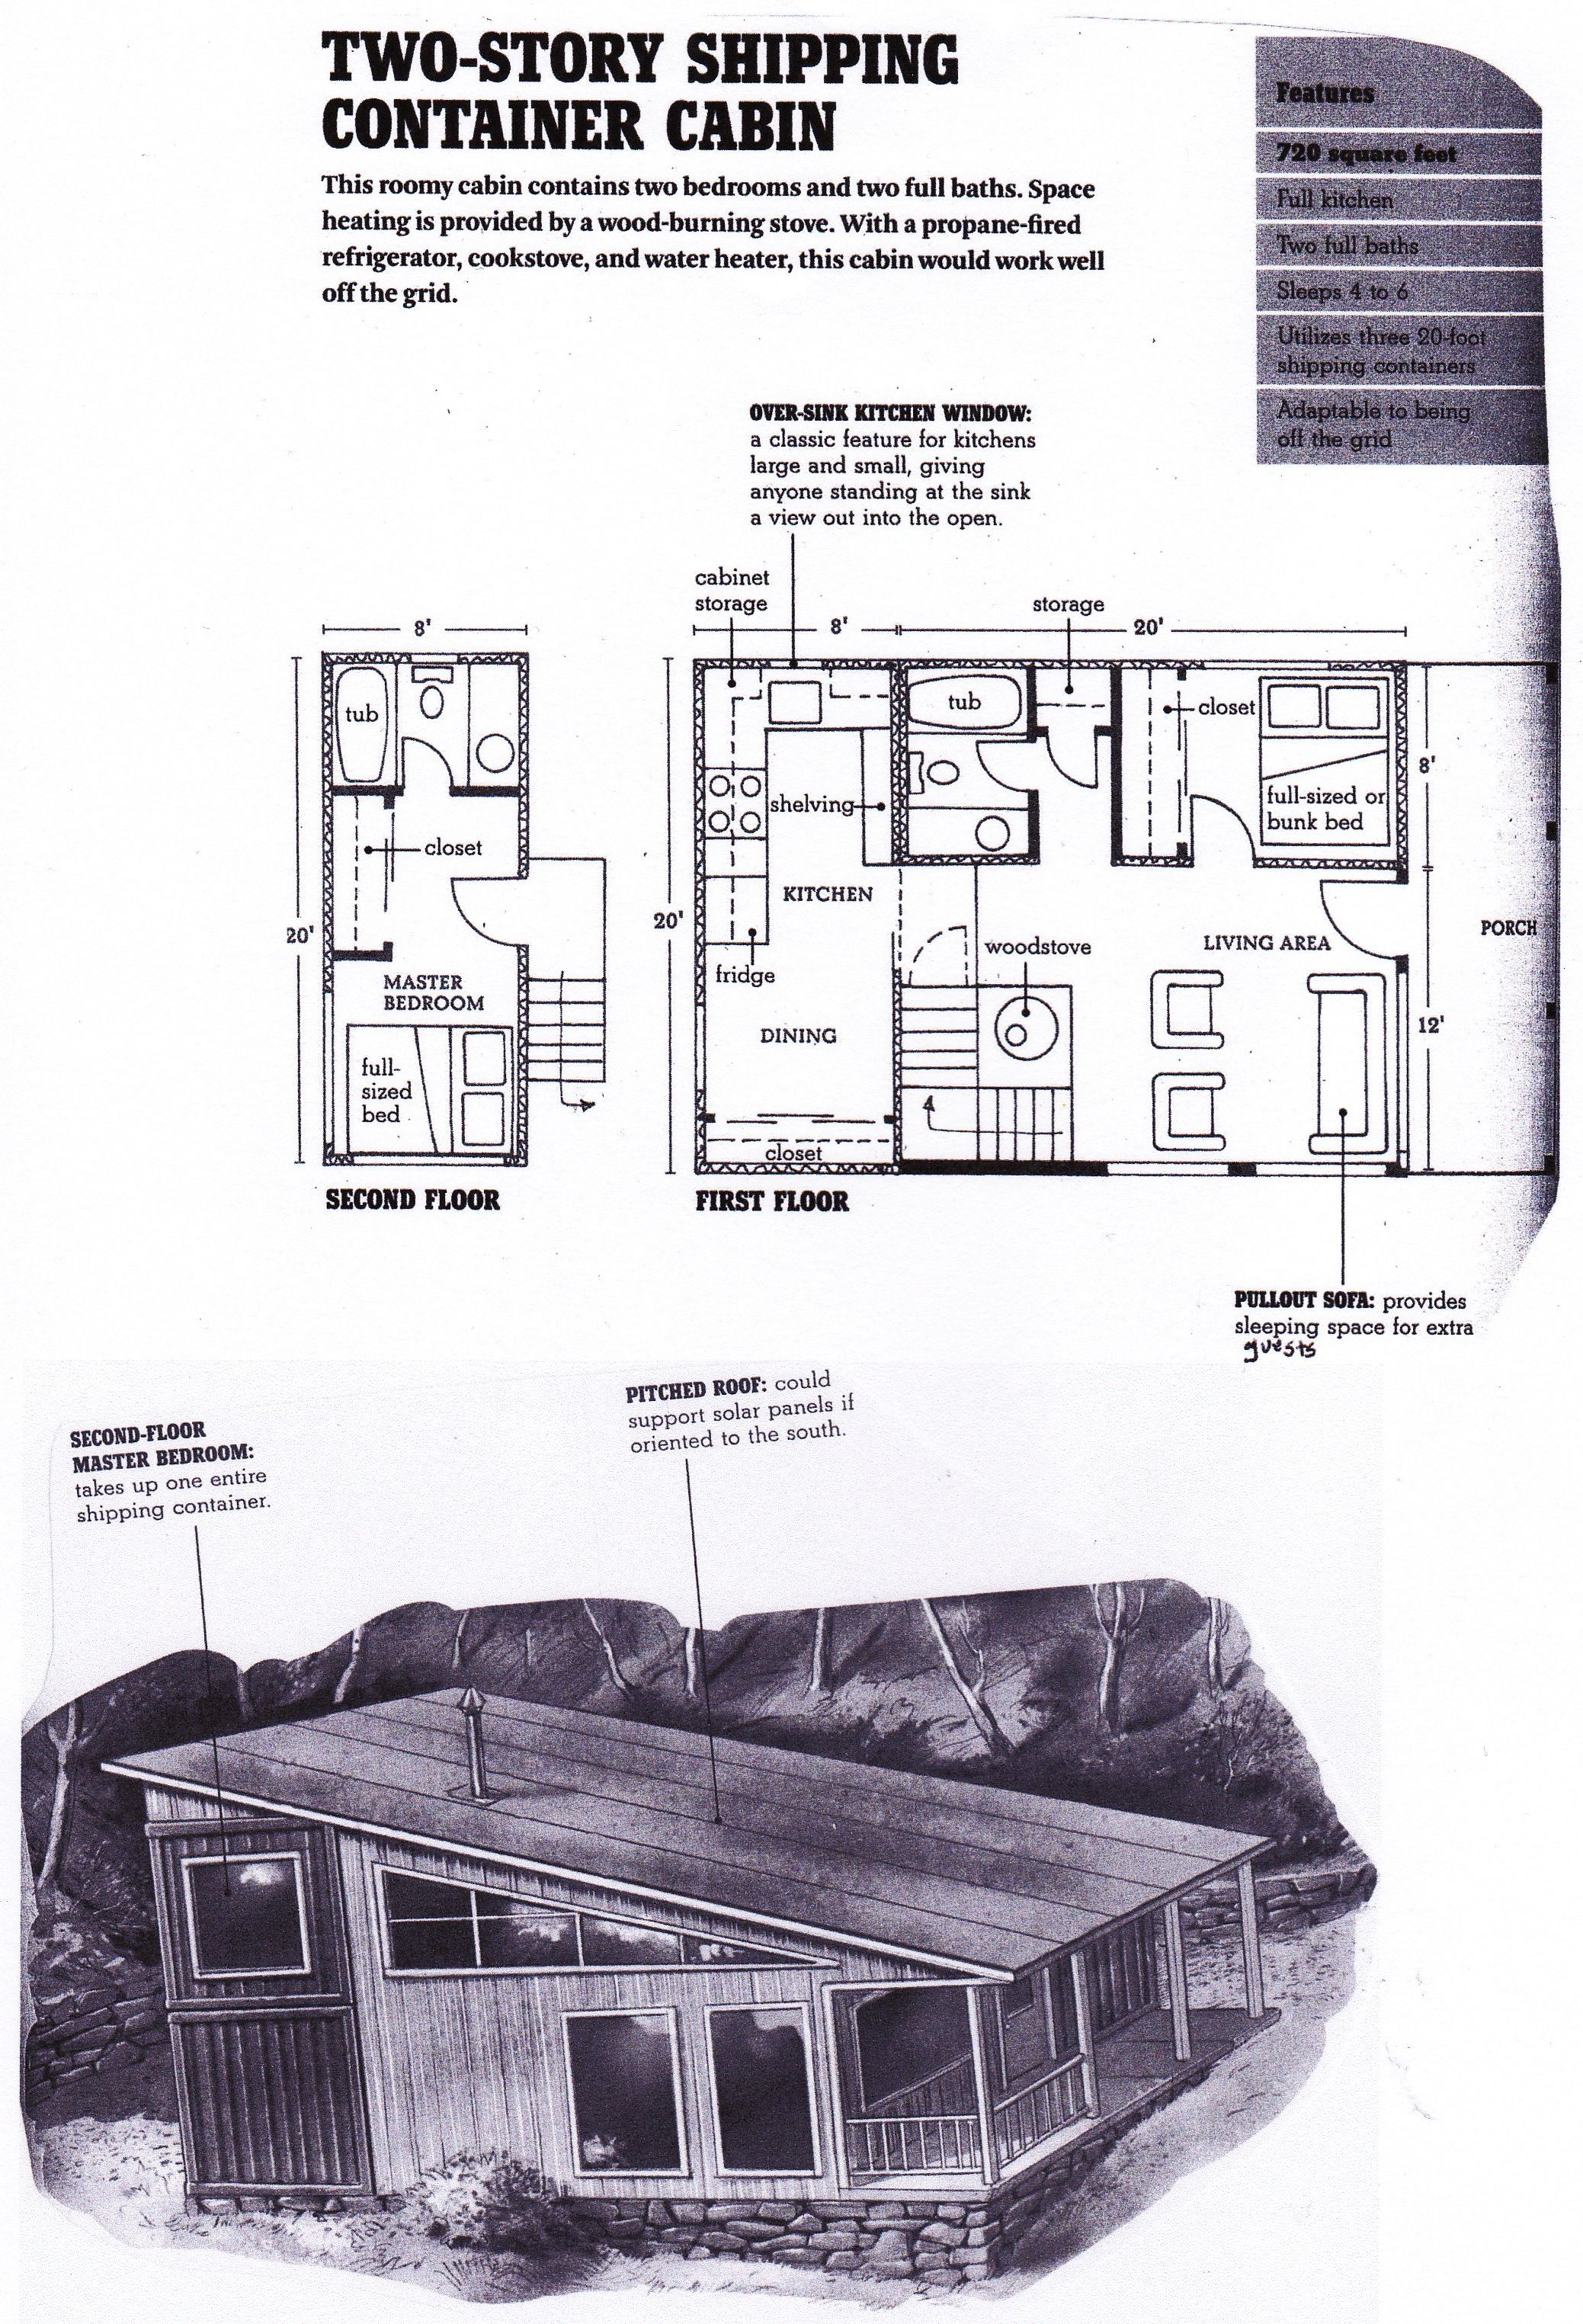 Shipping Container Floorplan From Compact Cabins Simple Living